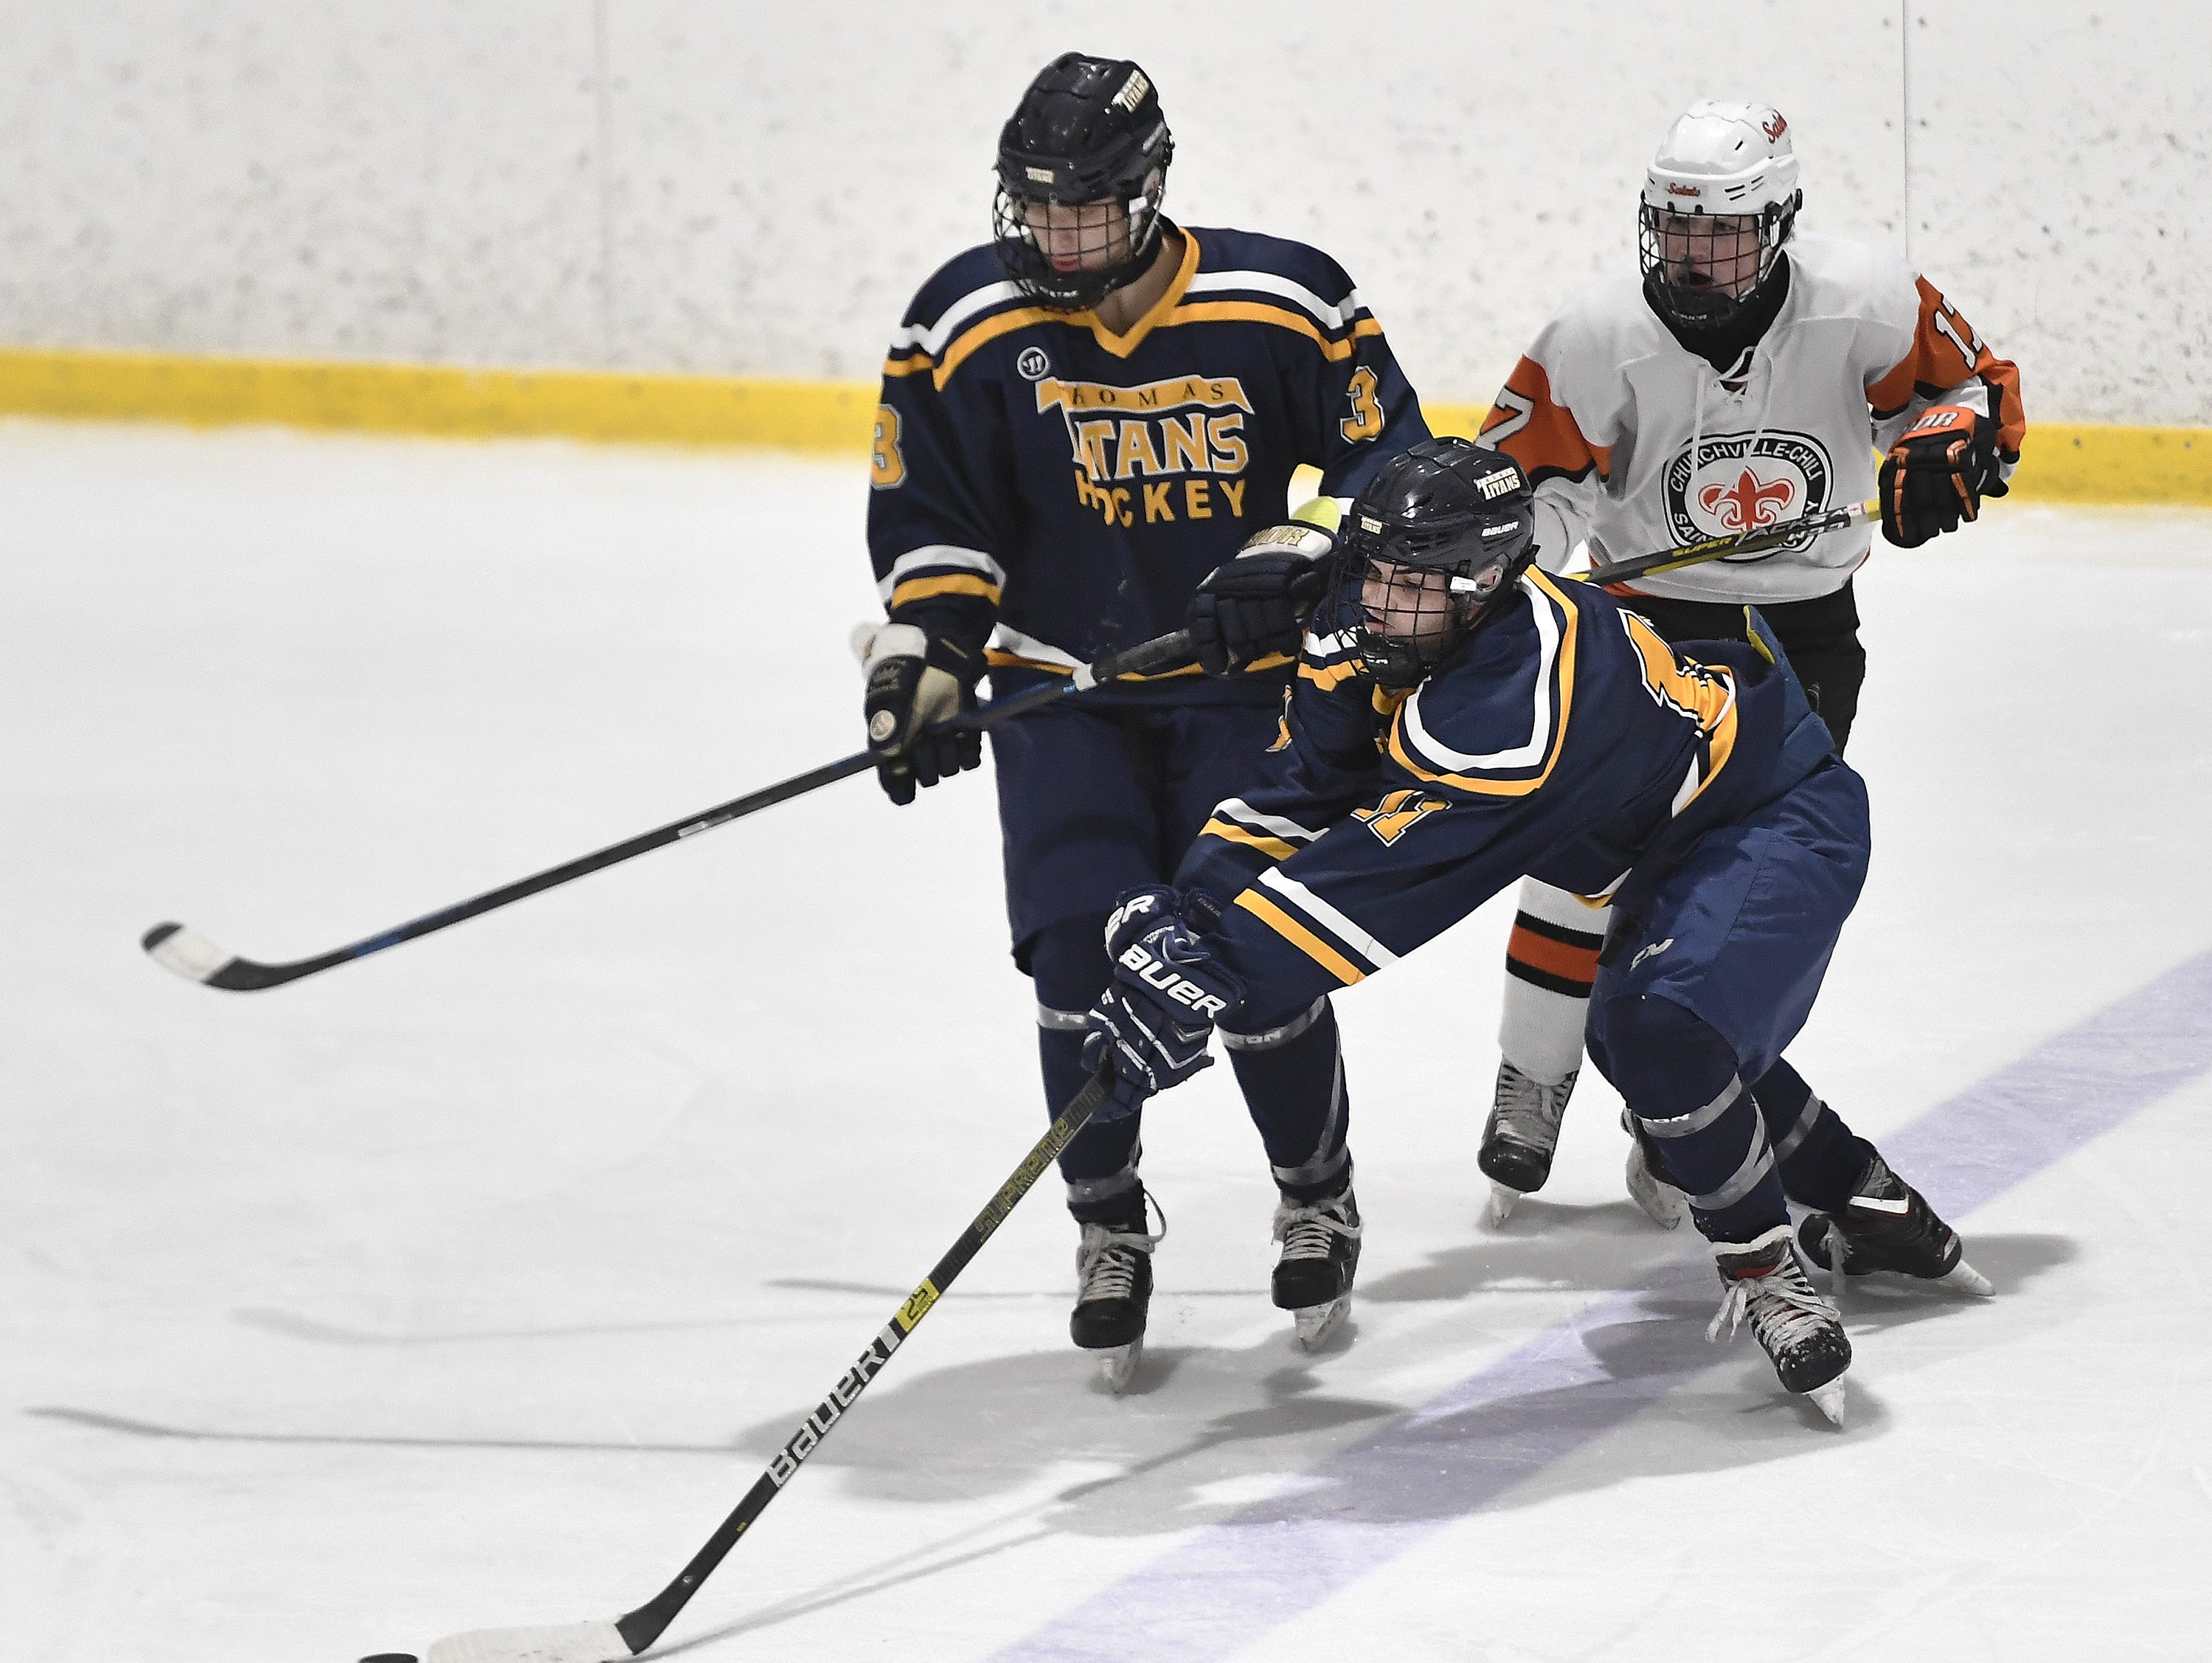 Webster Thomas' Spencer Nuccitelli reaches around Teagan Spang to keep the puck in the zone during a regular season game against Chuchville-Chili played at the Scottsville Ice Arena, Tuesday, Jan. 22, 2019. Webster Thomas beat Chuchville-Chili 4-1.